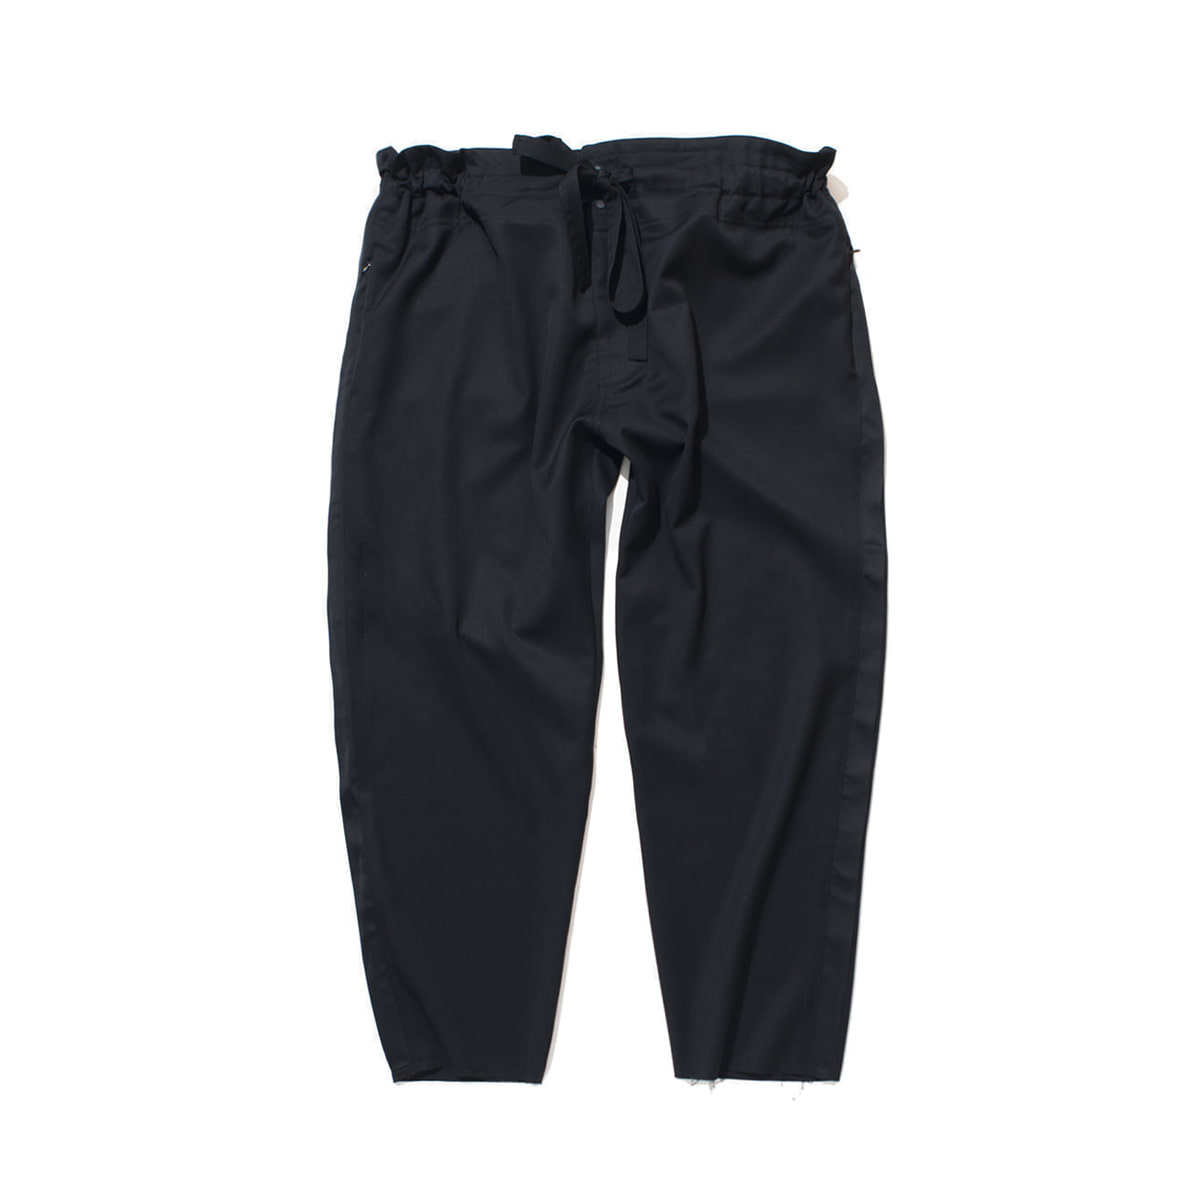 [GAKURO] TAPERED WRAP PANTS 'BLACK'